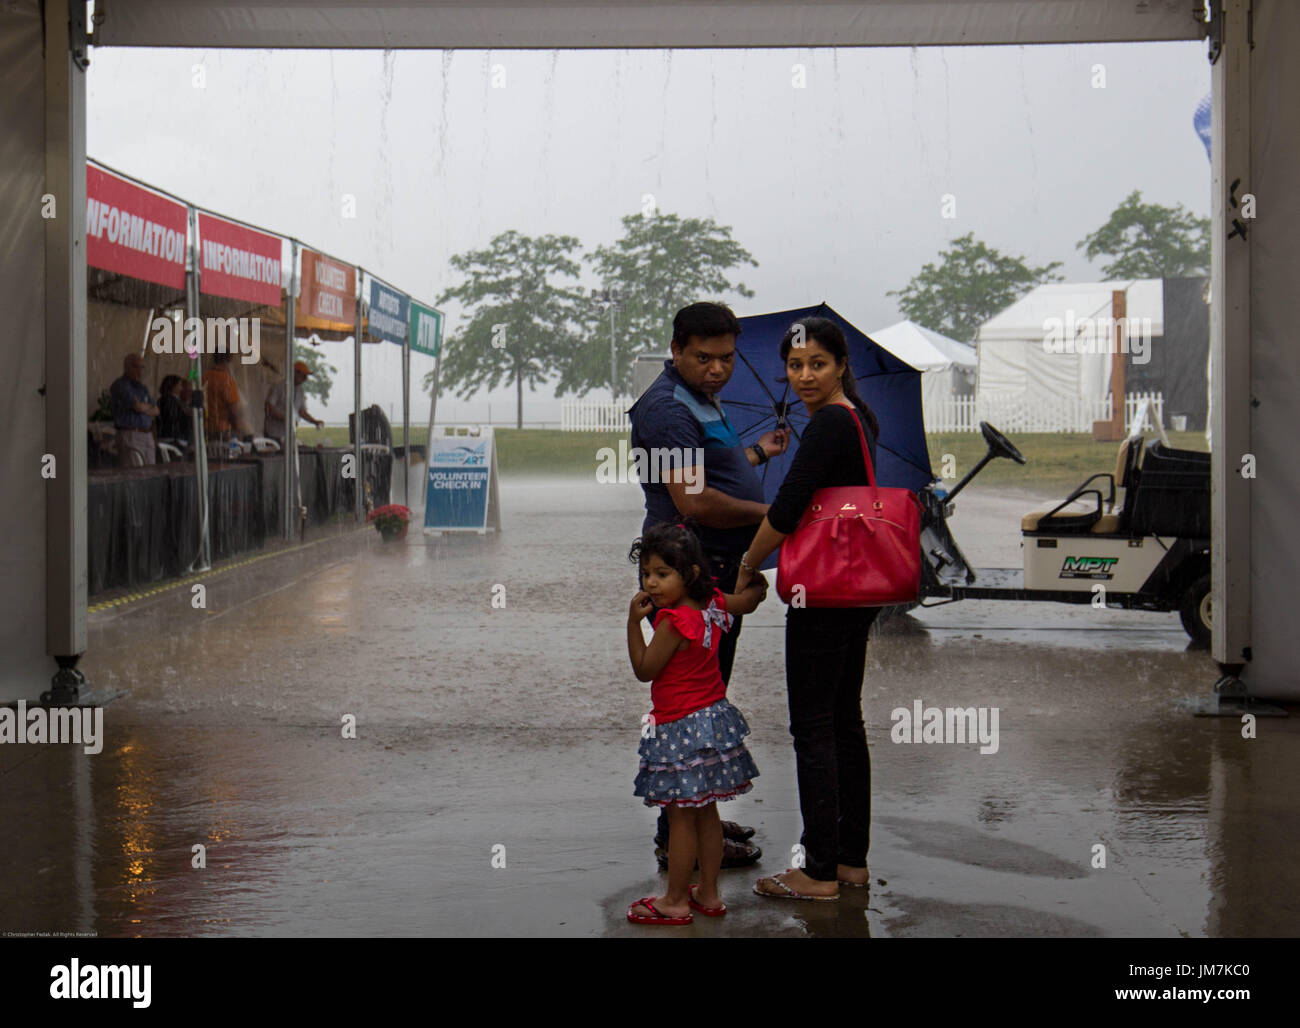 Family getting ready to go out in the rain. - Stock Image